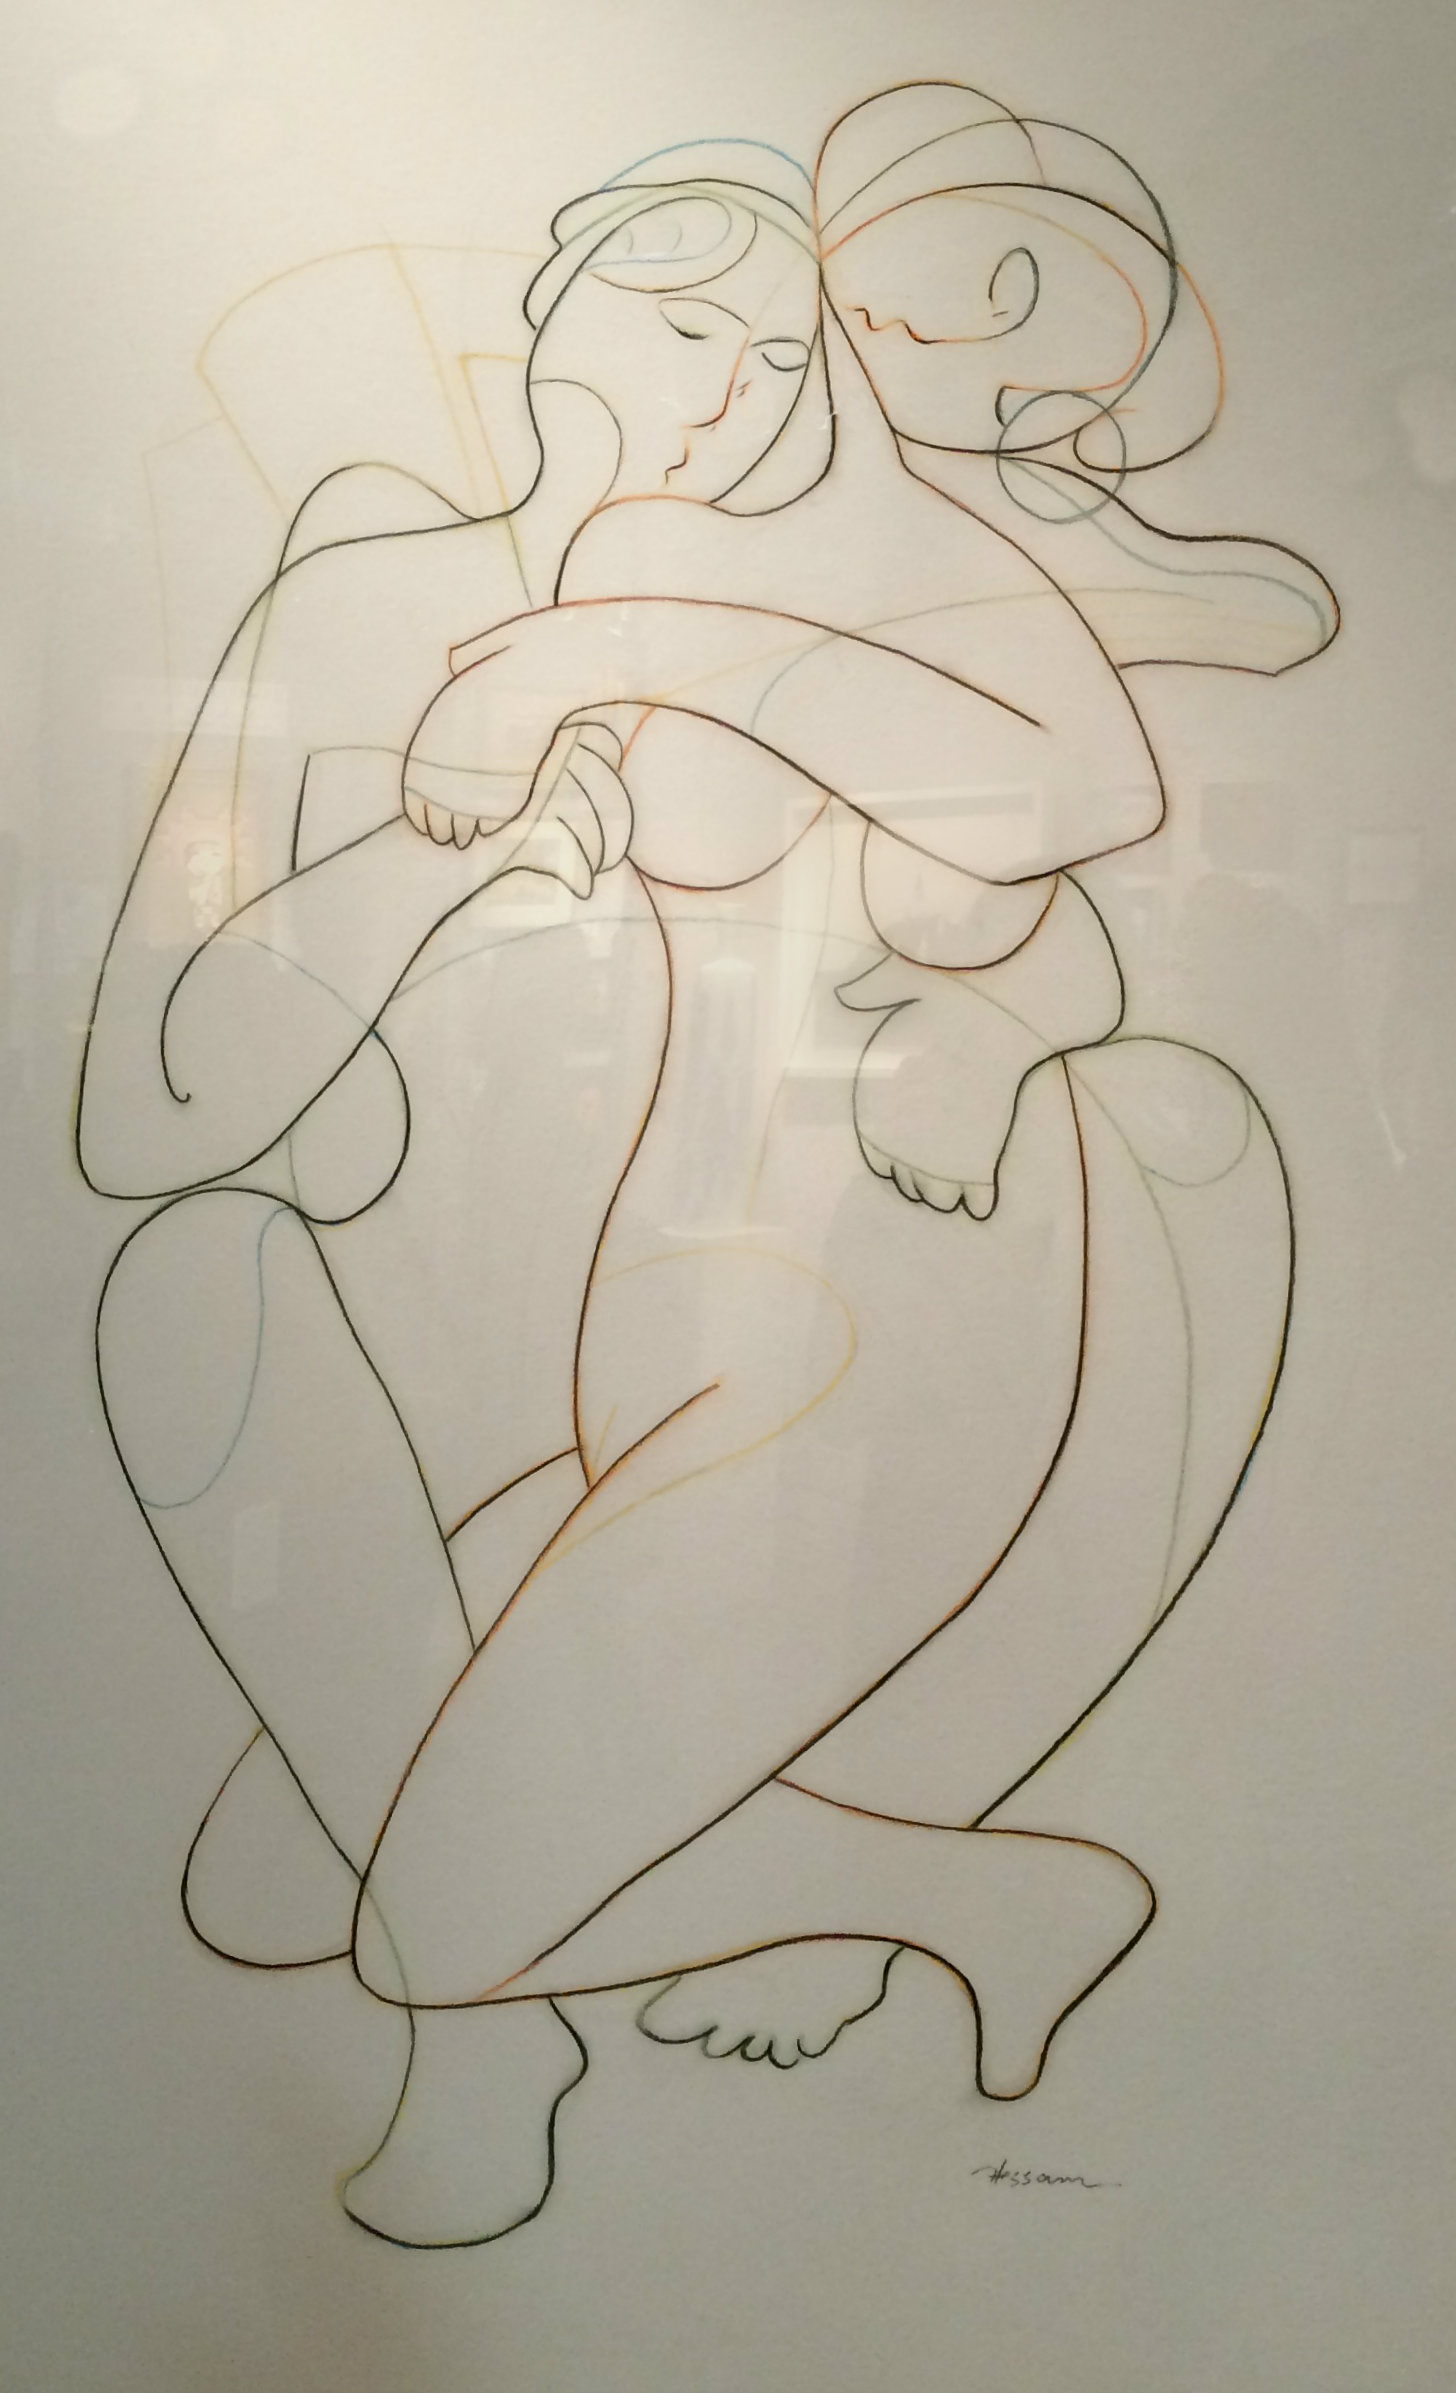 Drawing #47 by Hessam Abrishami from the ABRA Gallery